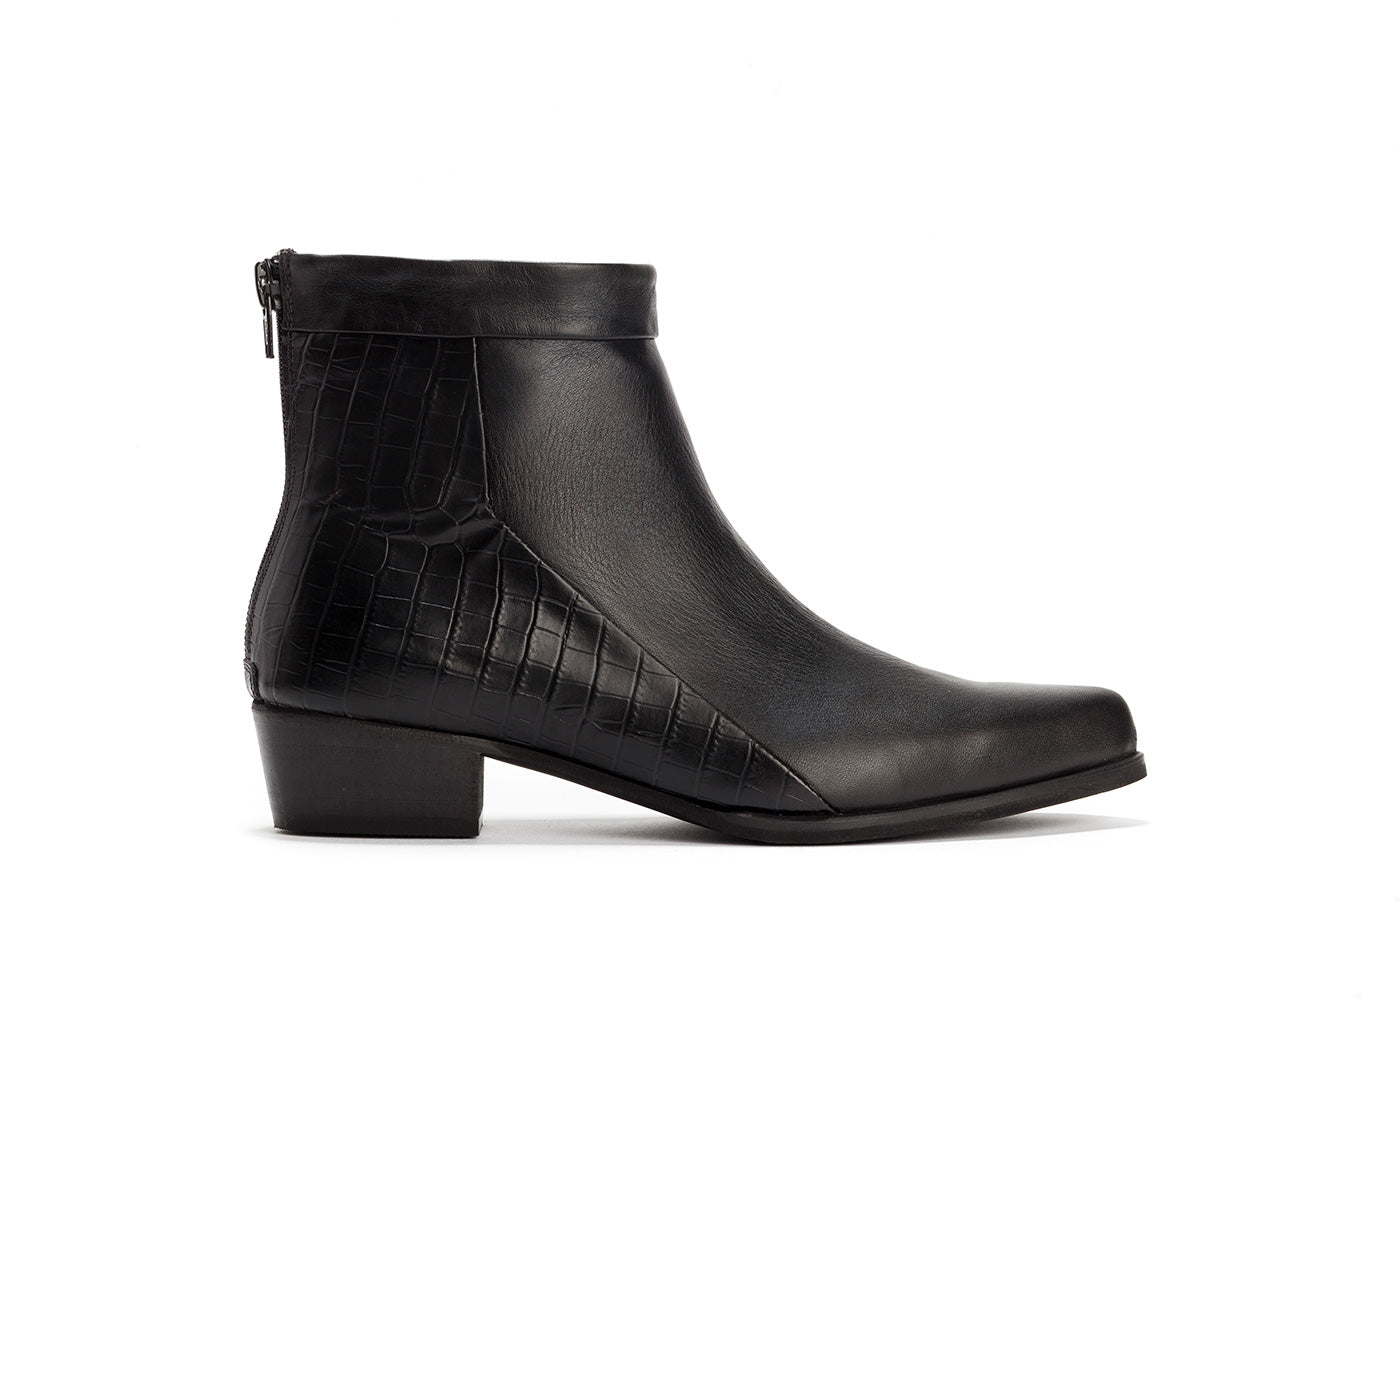 Carmen - Black Leather Ankle Boots